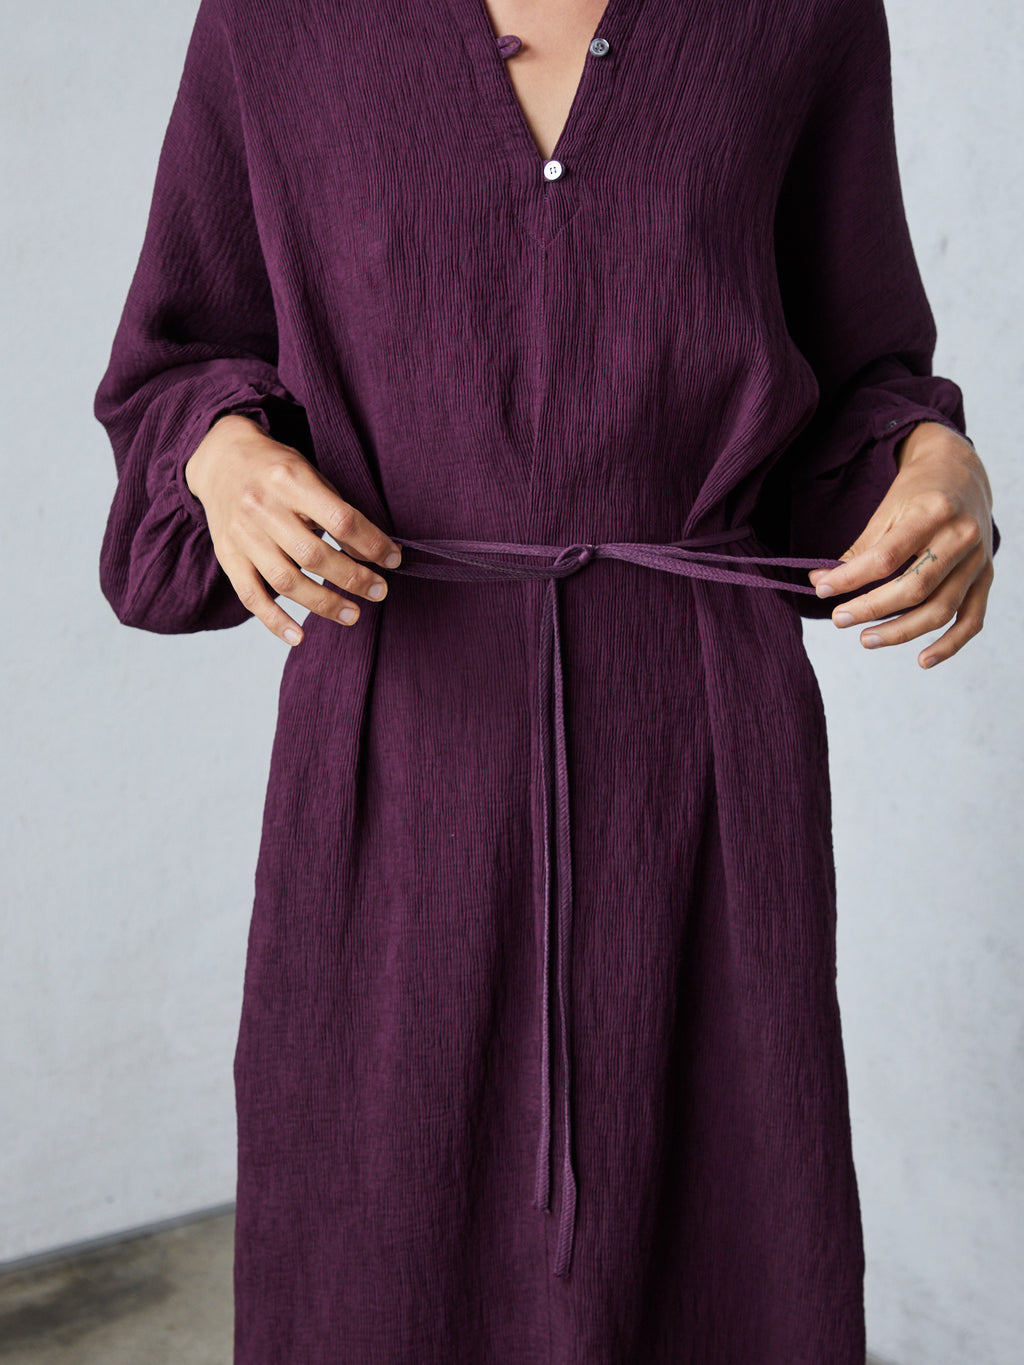 Plum Fortuny Pleats Getty Dress